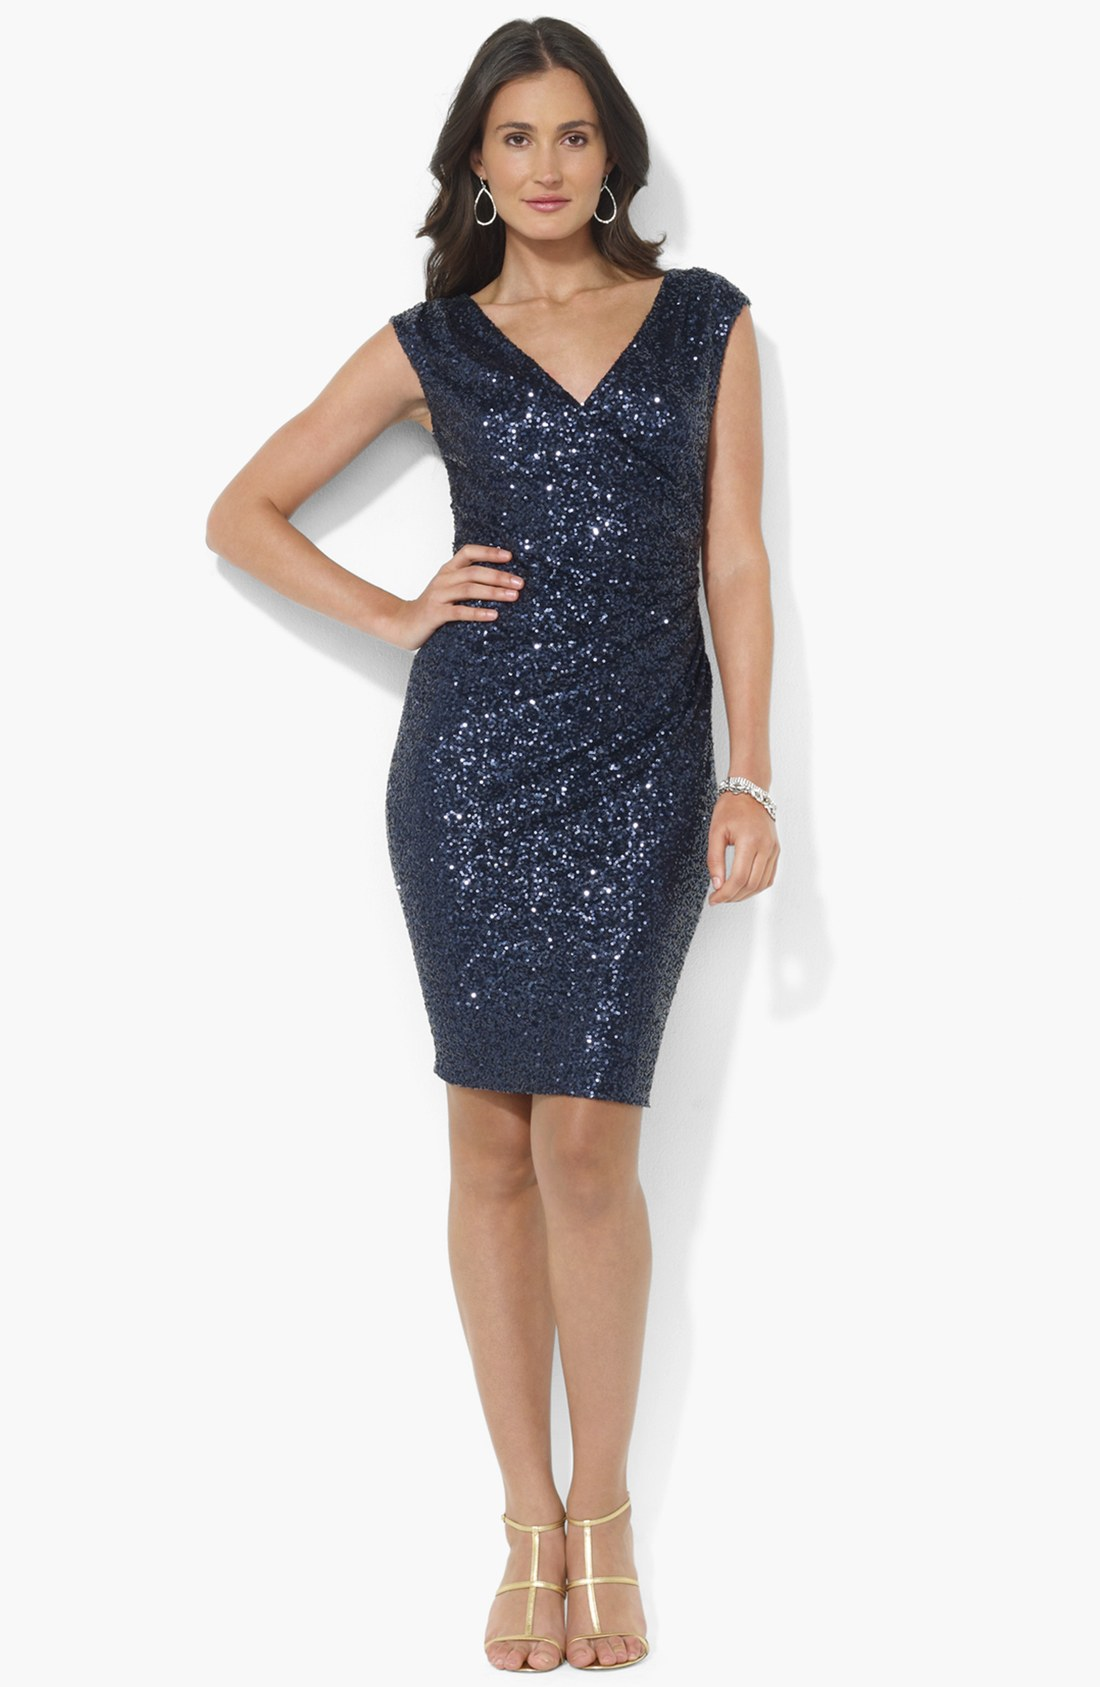 To acquire Sequin navy dress pictures trends